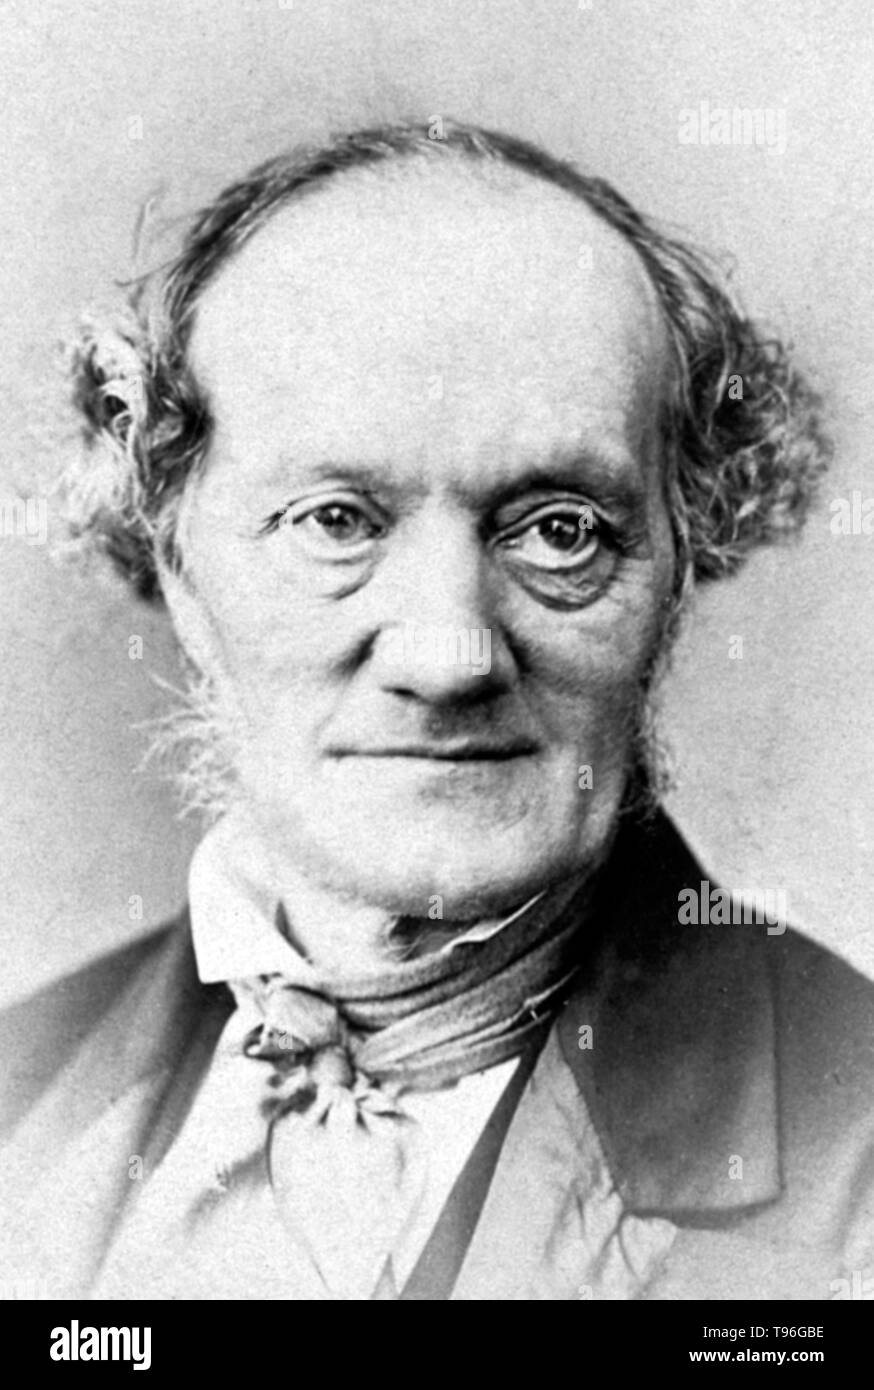 Richard Owen (July 20, 1804 - December 18, 1892) was an English biologist, comparative anatomist and paleontologist. One of his positions was that of prosector for the London Zoo, which meant that he had to dissect and preserve any zoo animals that died in captivity. This gave him vast experience with the anatomy of exotic animals. He produced a vast array of scientific work, but is probably best remembered today for coining the word Dinosauria. Owen was an outspoken critic of Darwin's theory of evolution by natural selection. He agreed with Darwin that evolution occurred, but thought it was m - Stock Image